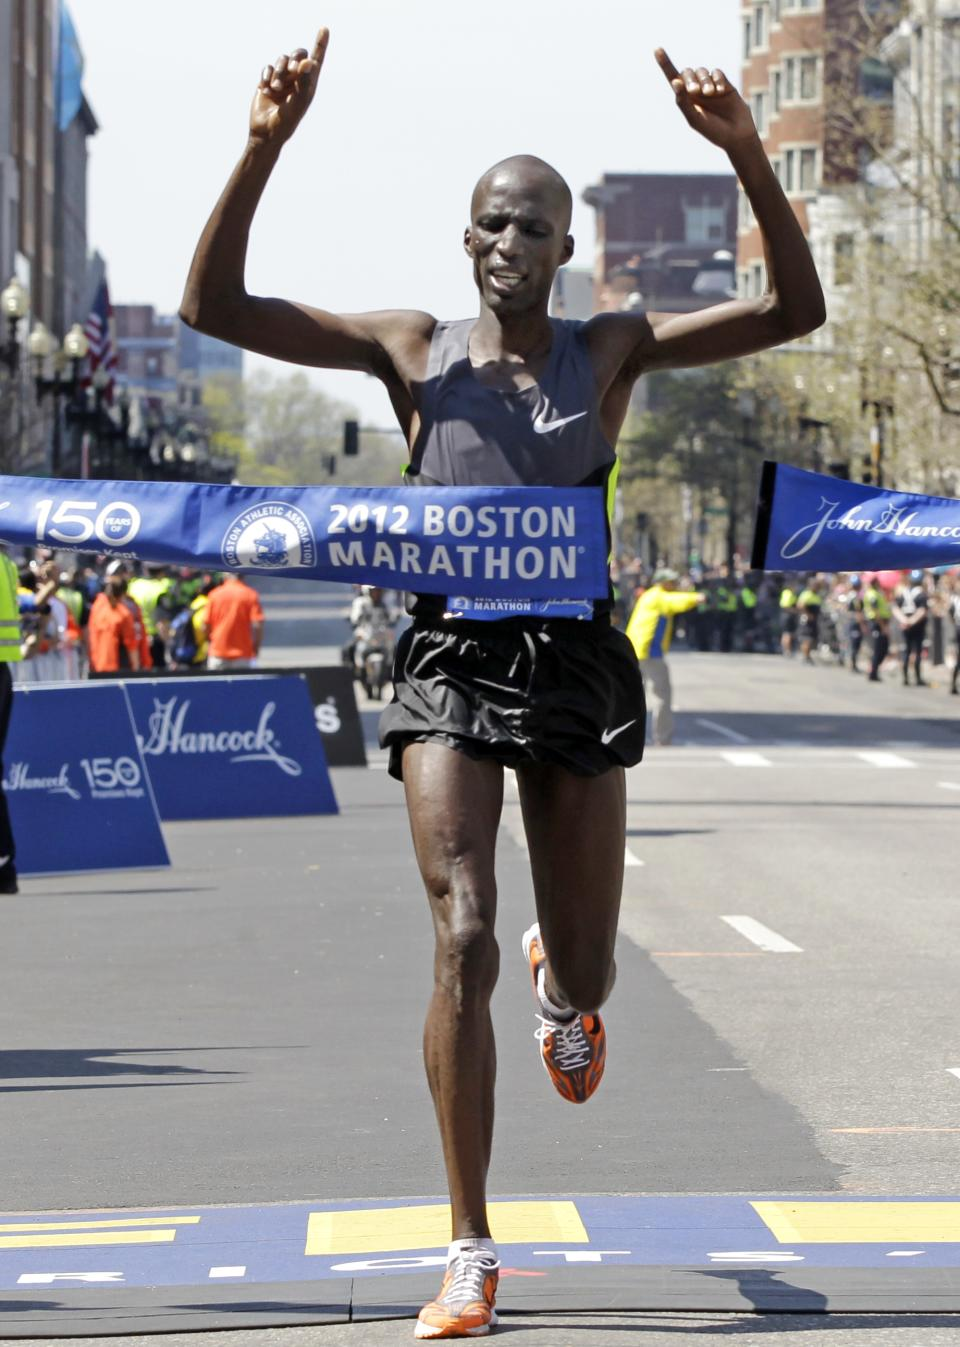 Wesley Korir of Kenya crosses the finish line to win the men's division of the 2012 Boston Marathon in Boston, Monday, April 16, 2012. (AP Photo/Elise Amendola)